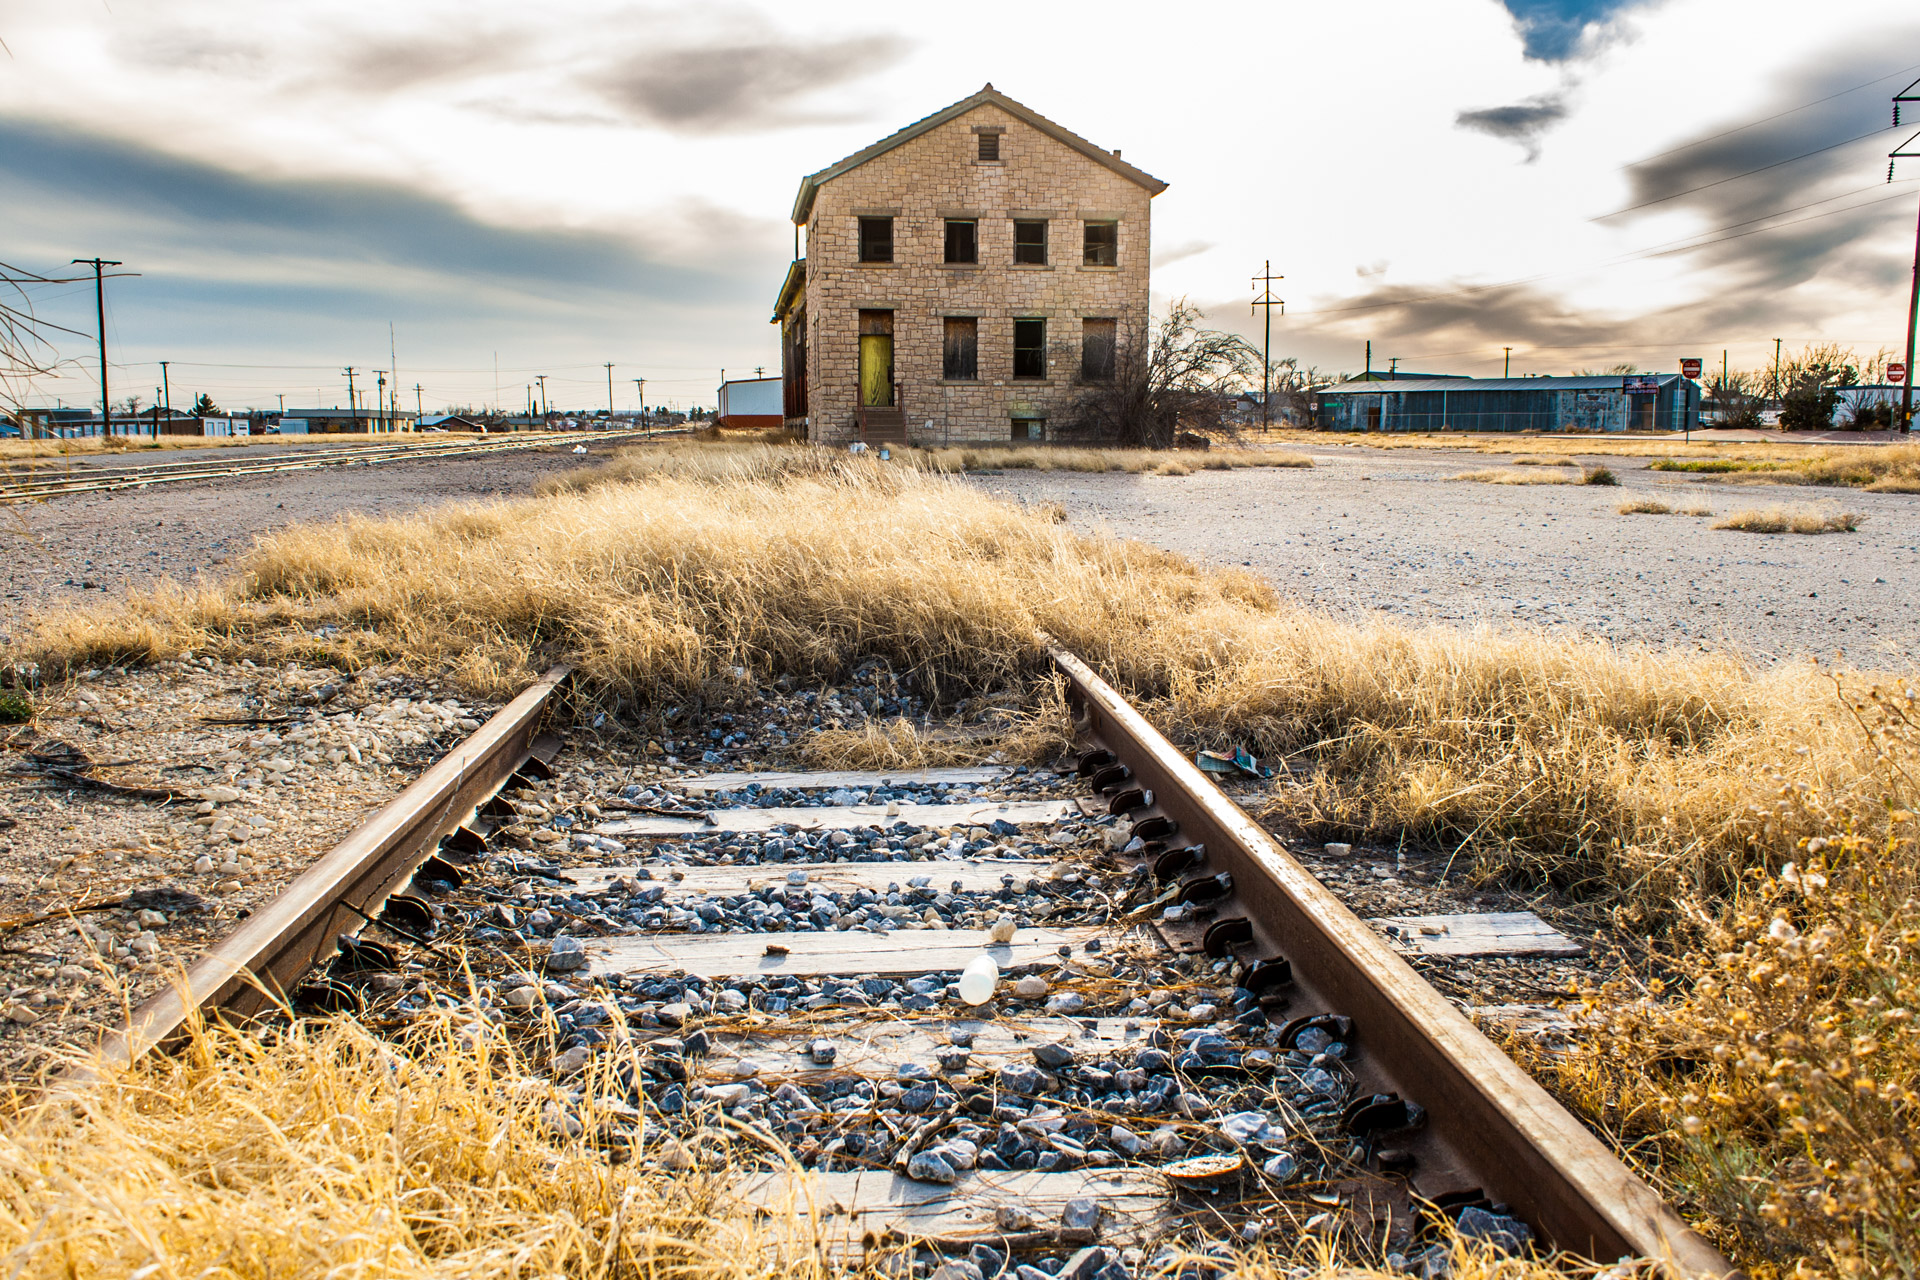 Fort Stockton, Texas - A Colorful Train Depot (tracks)